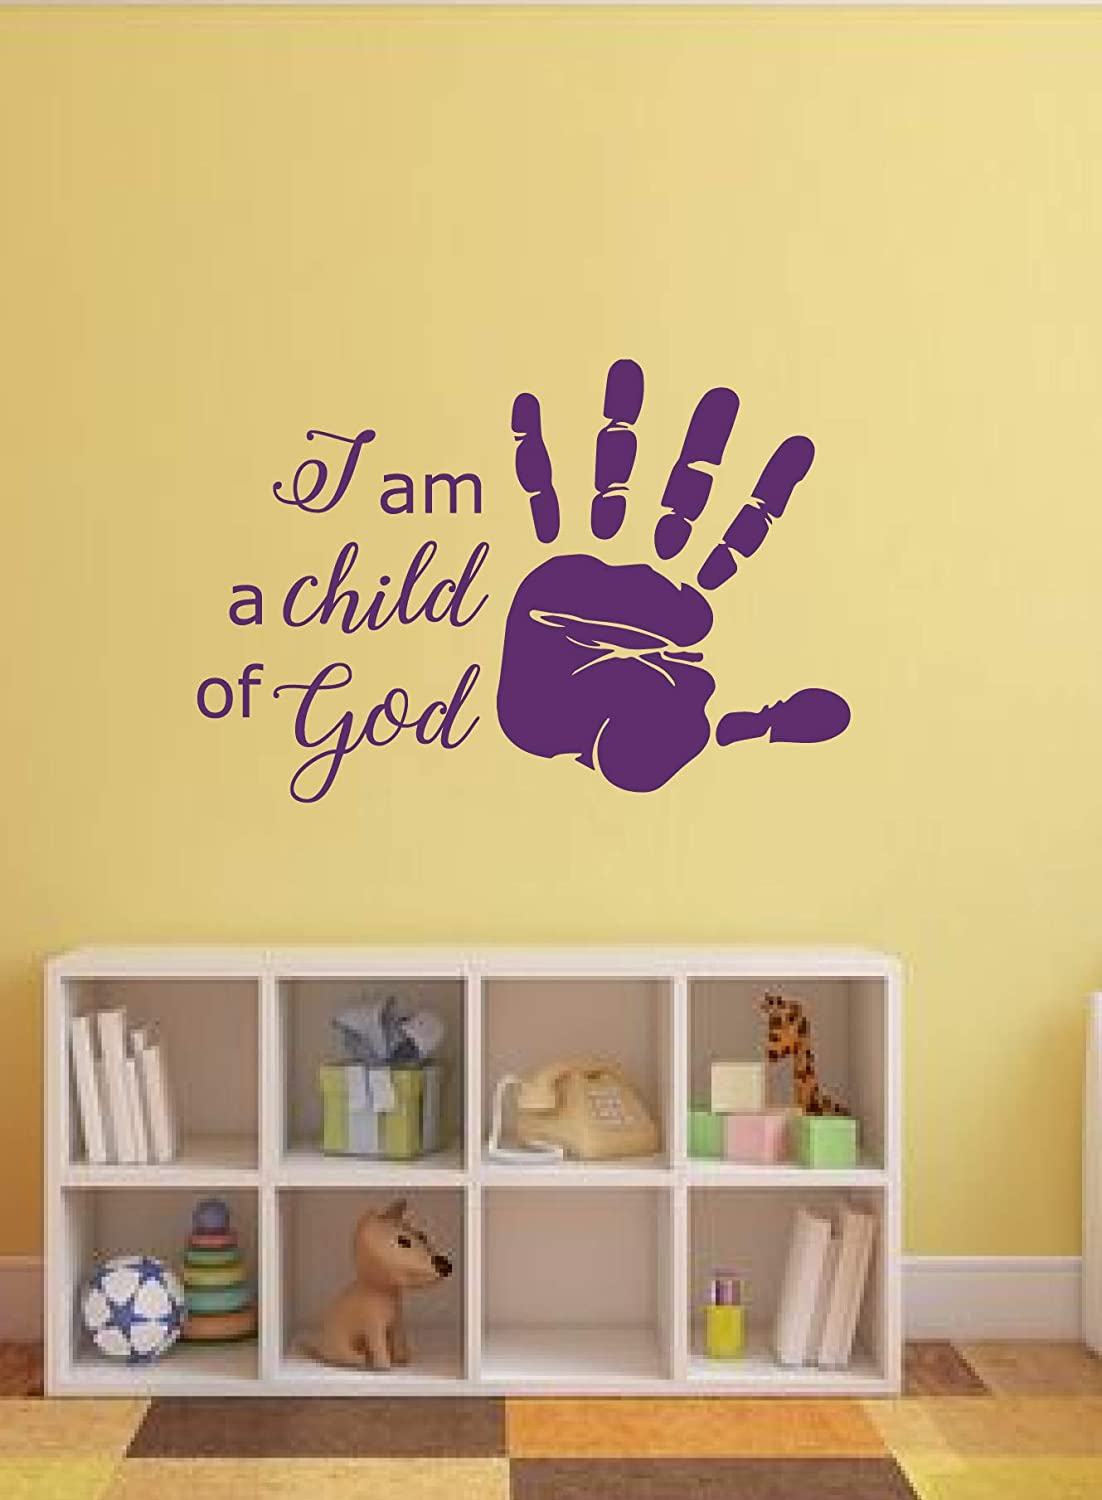 CustomVinylDecor Religious I am a Child of God Quote Vinyl Wall Sticker | Home Decor Sticker for Bedroom, Playroom, or Bible School | Small, Large Sizes | Black, Brown, Green, Gold